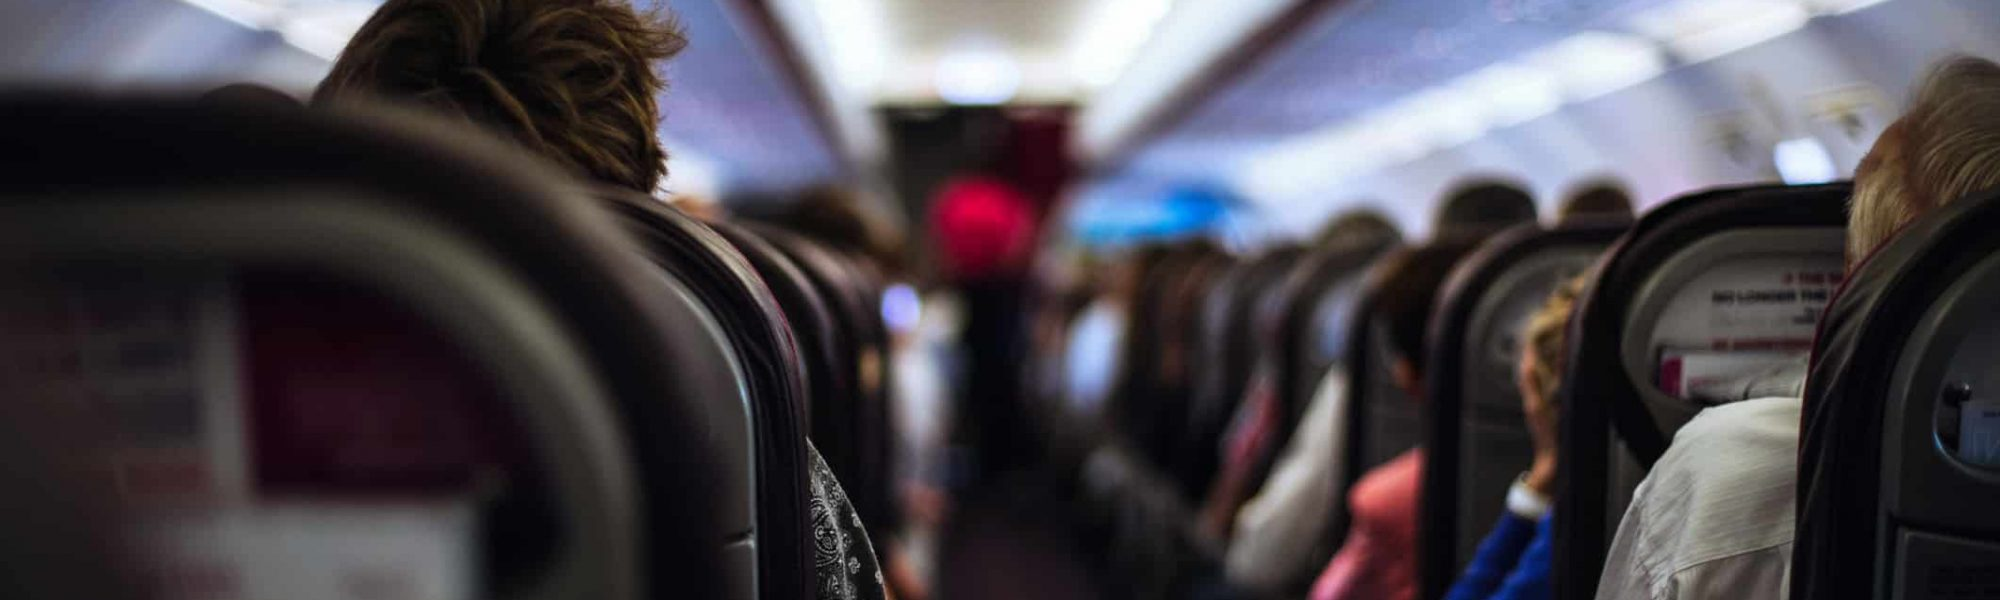 7 Air Travel Tips for a relaxed and worry-free flying